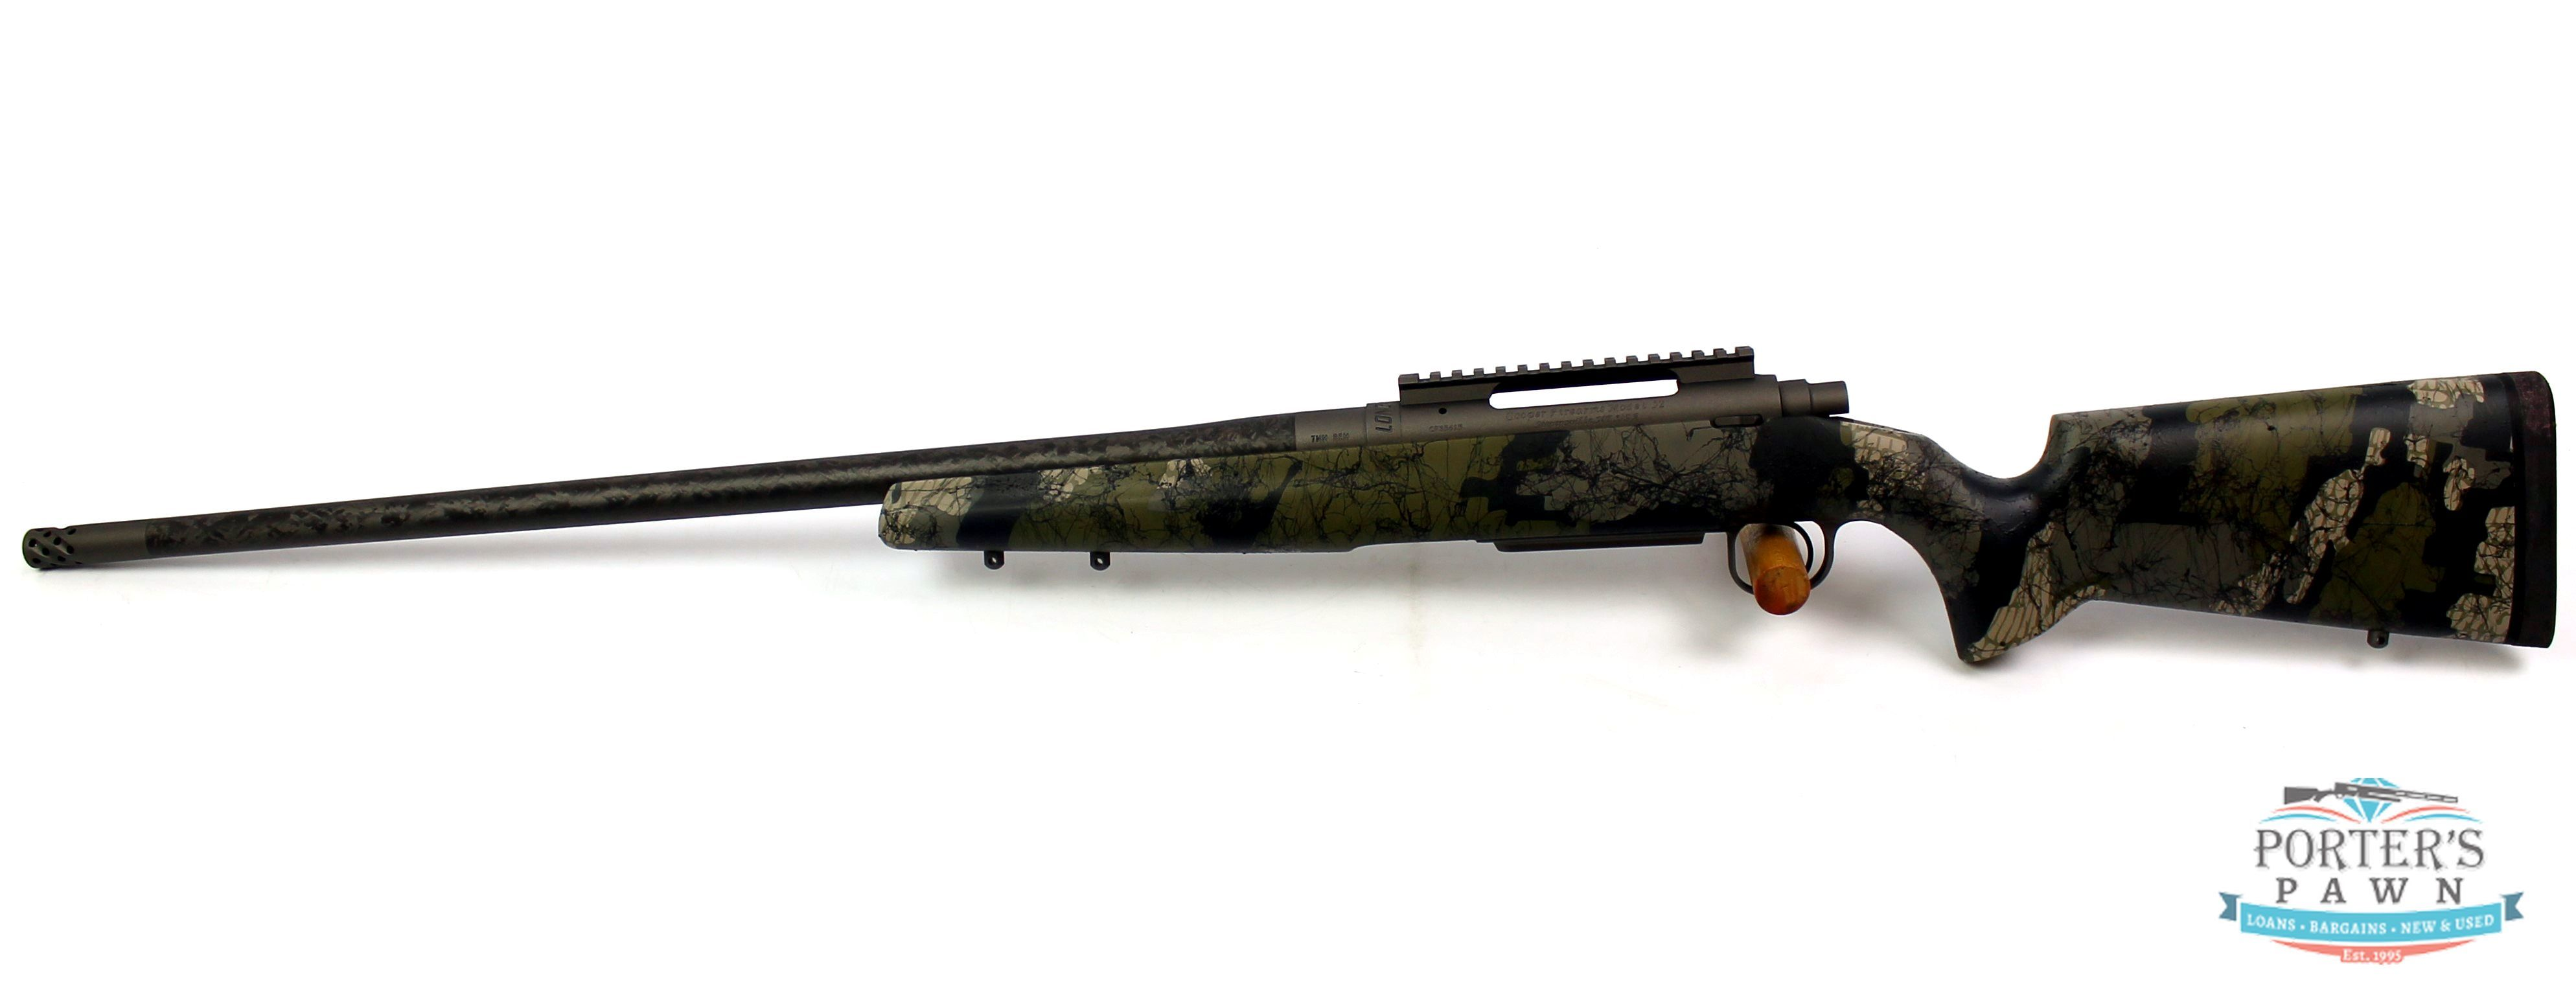 Cooper M52 Open Country LR Lightweight 7mm Rem Mag-img-4